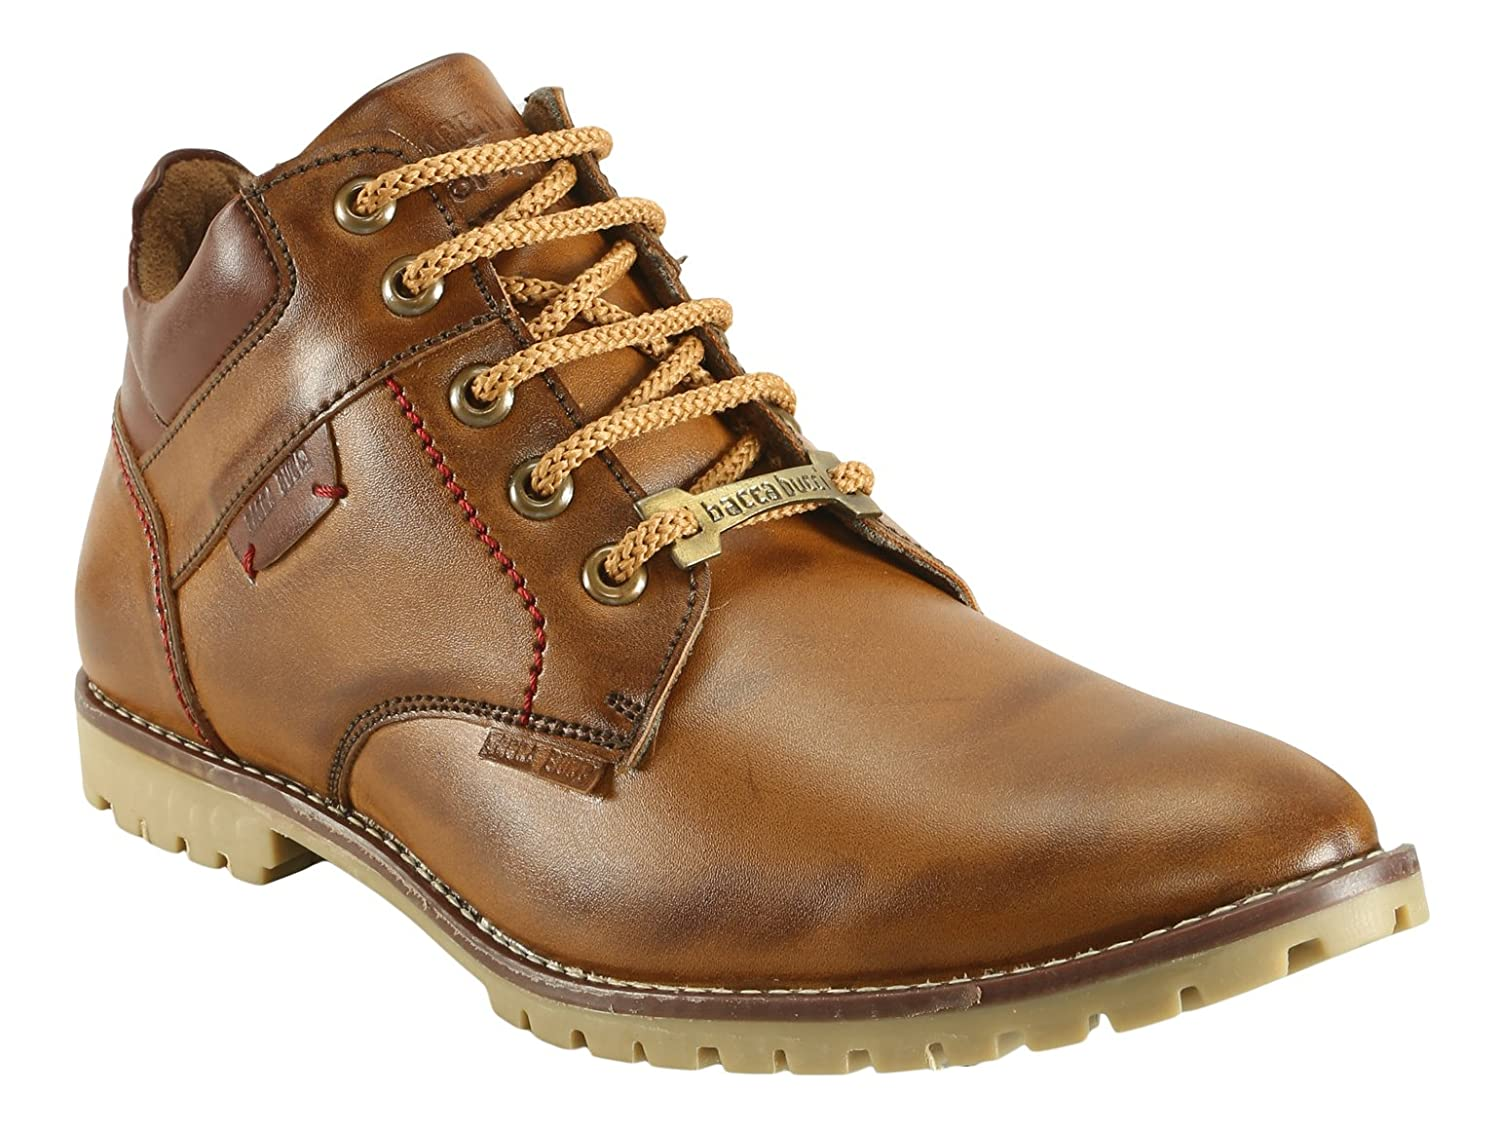 0caa29edf5b Bacca Bucci Men's Faux Leather Boots